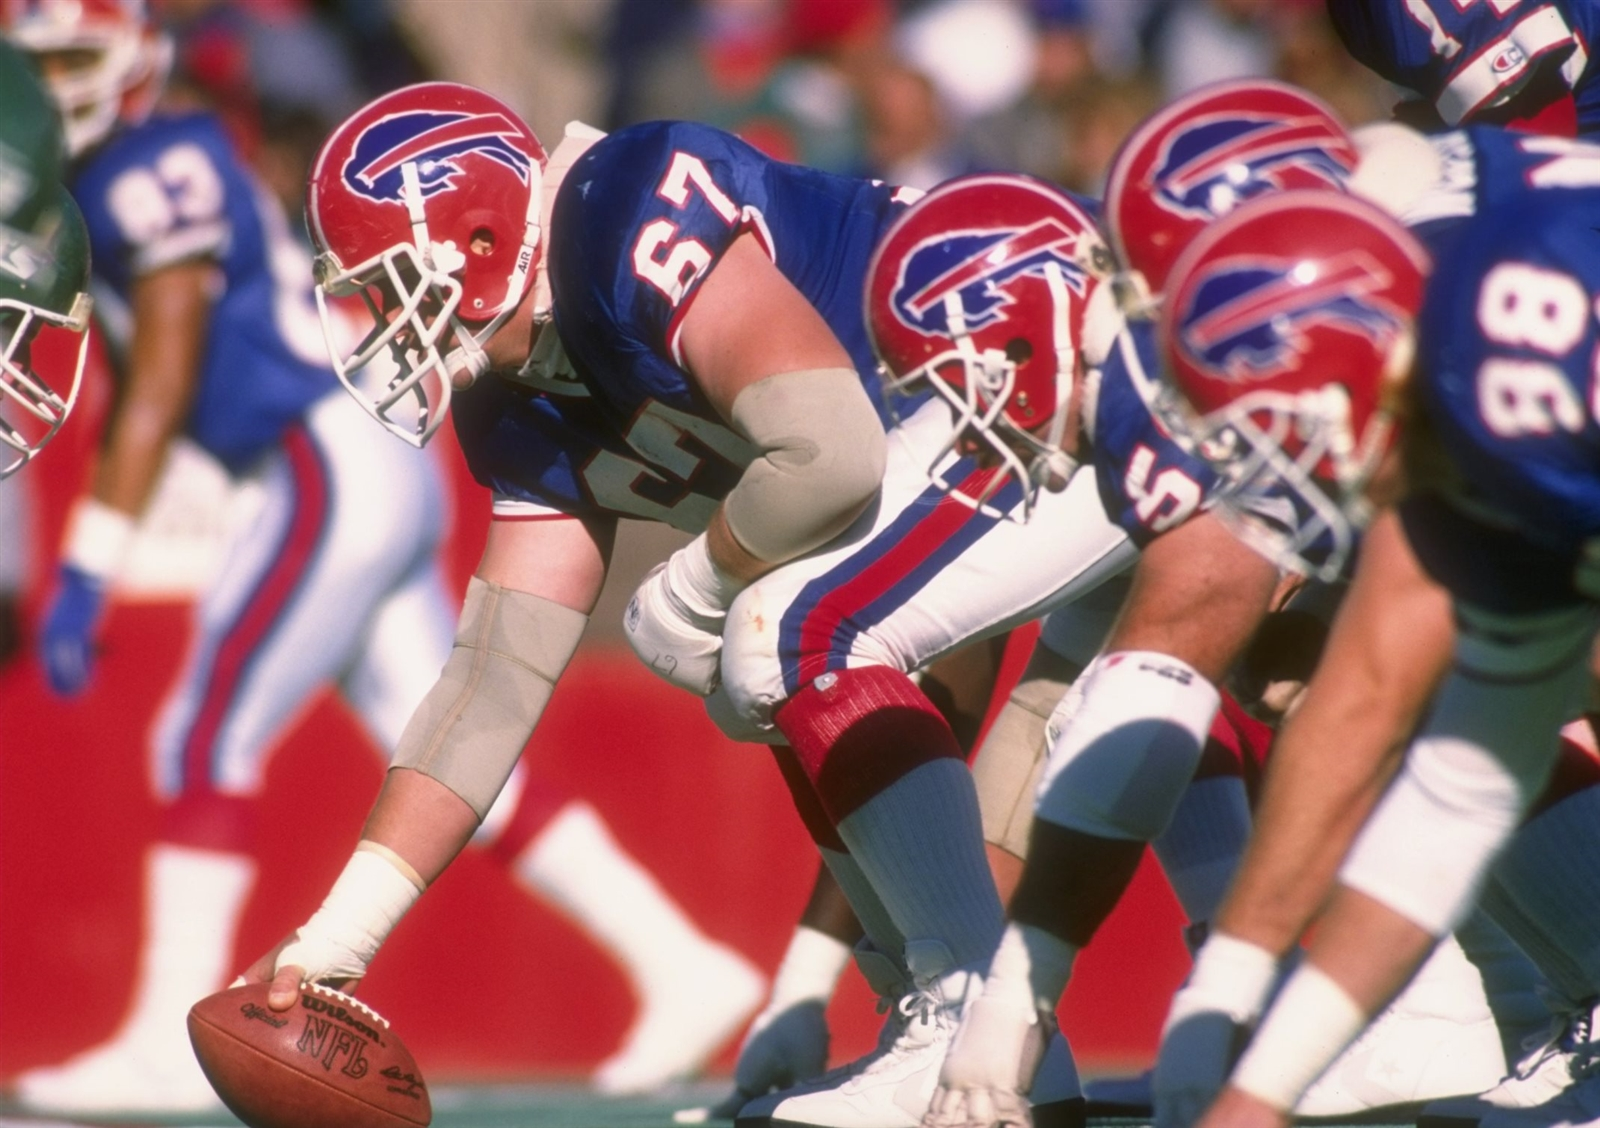 "1. Kent Hull. The leader of the Bills' Super Bowl-era offensive lines started 188 games, counting playoffs, over 11 seasons. He was critical to the success of the no-huddle offense due to his intelligence and ability to make line calls quickly, something none of his NFL contemporaries at center had to do with regularity. Hull also was well-built for center, long-armed and ""country"" strong. When Hull talked, everyone listened. He was first-team All-Pro in 1990 and 1991 and made the Pro Bowl in 1988, '89 and '90."